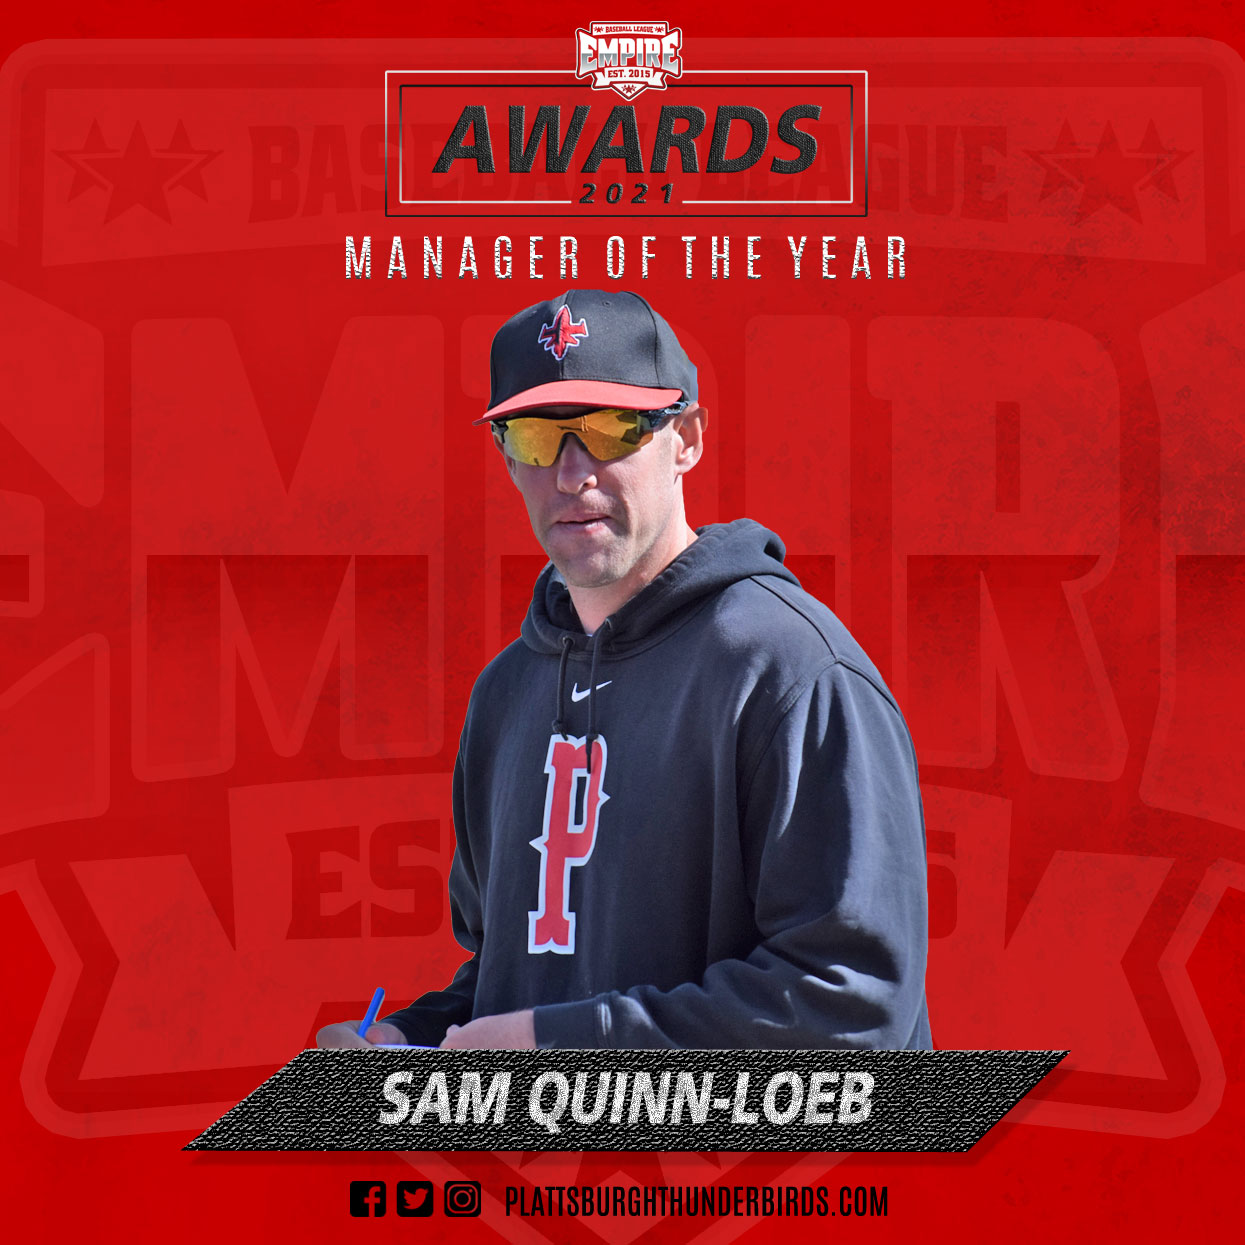 Awards-Manager-of-the-Year2